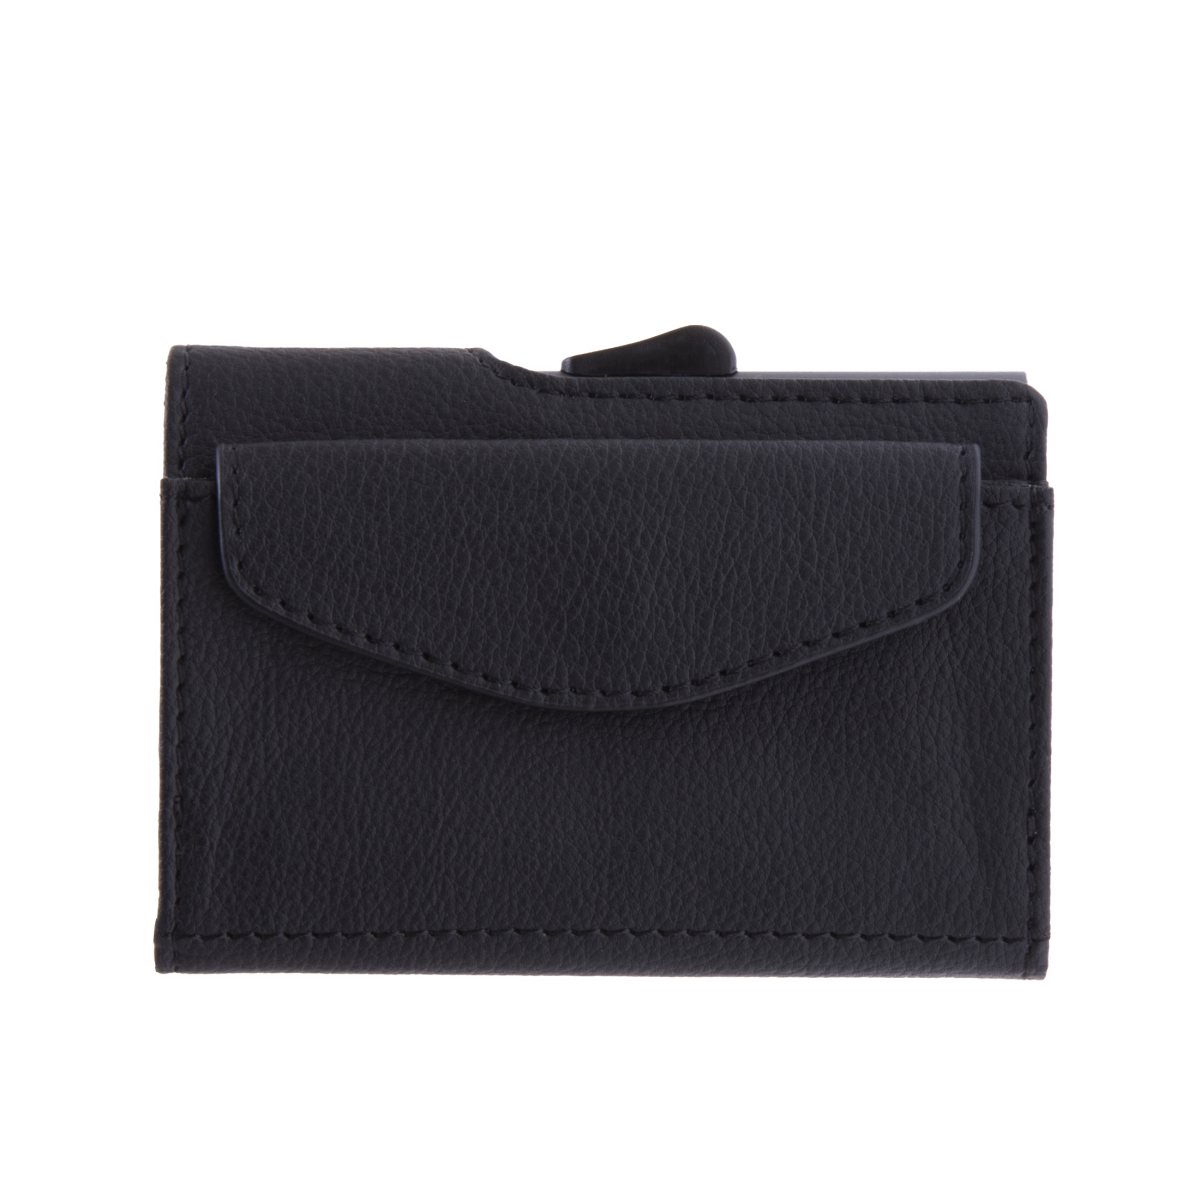 C-Secure Aluminum Card Holder with Genuine Leather and Coin Pouch - Black